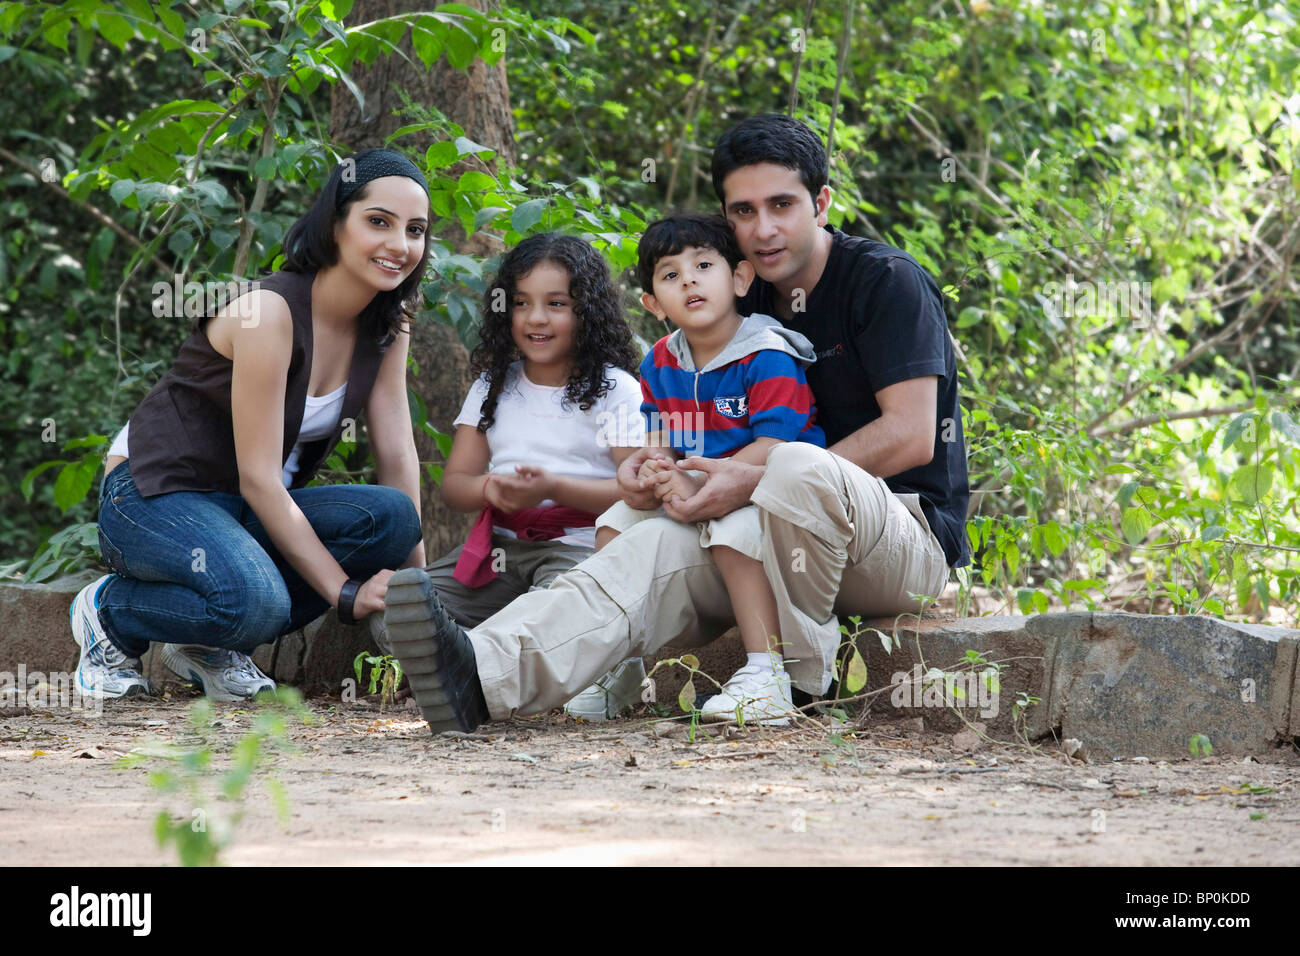 Portrait of a family in a park - Stock Image